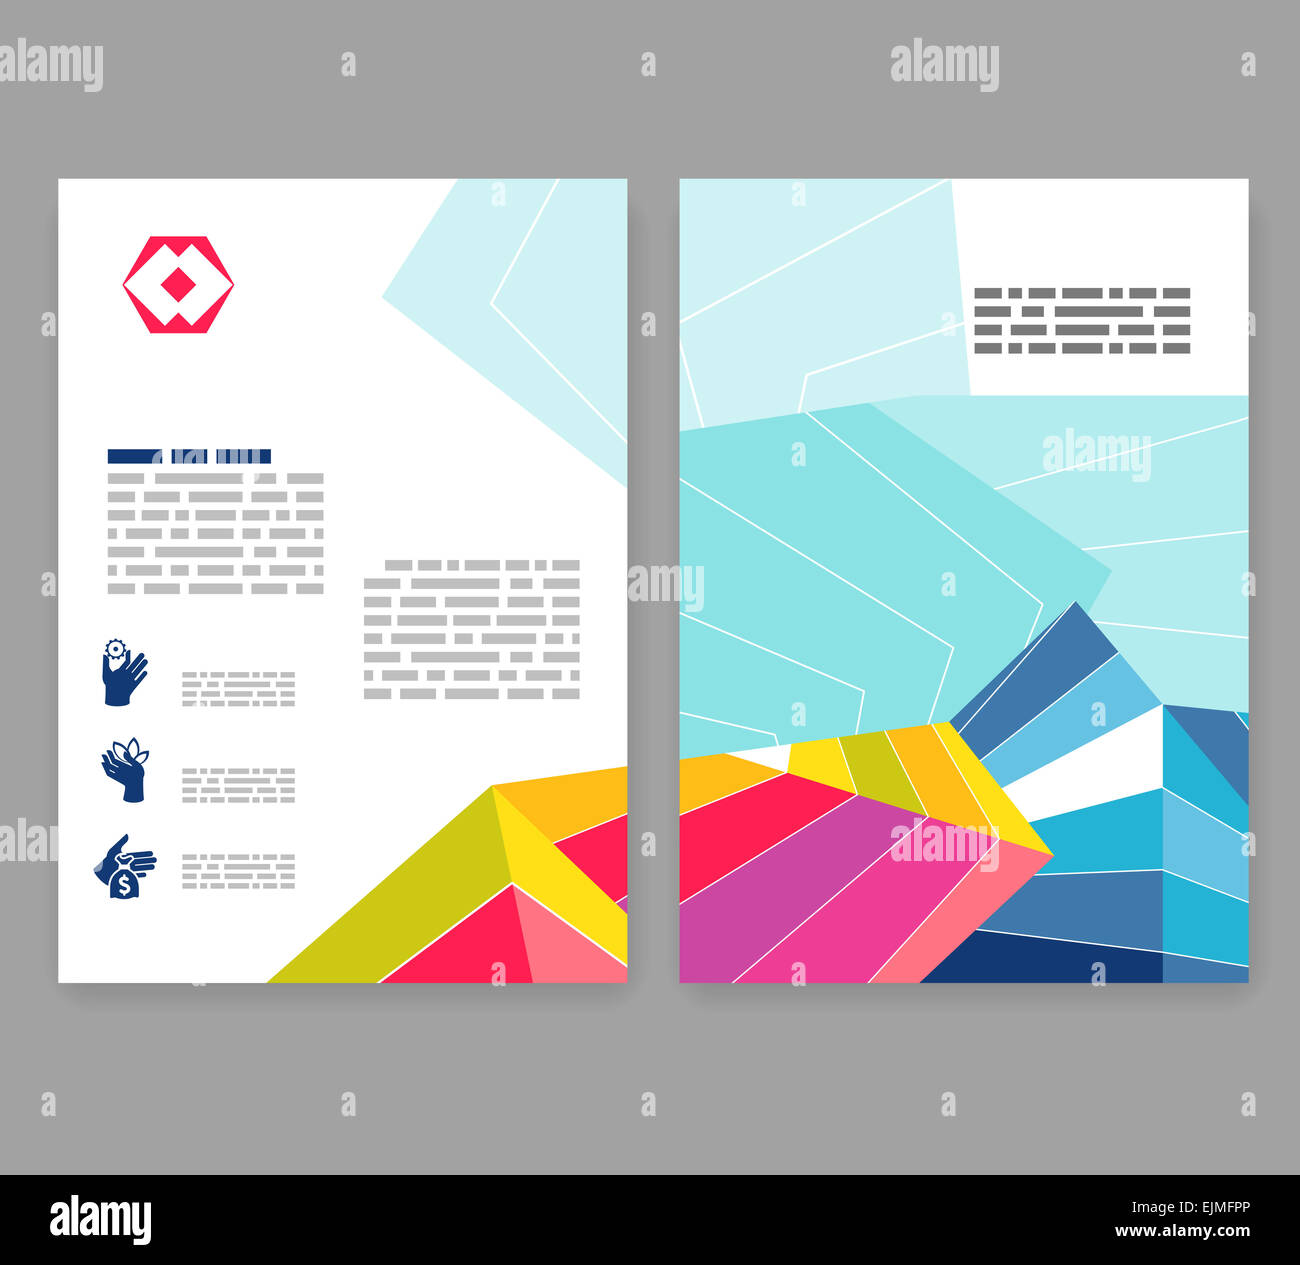 four fold brochure template - flyer leaflet booklet layout editable design template